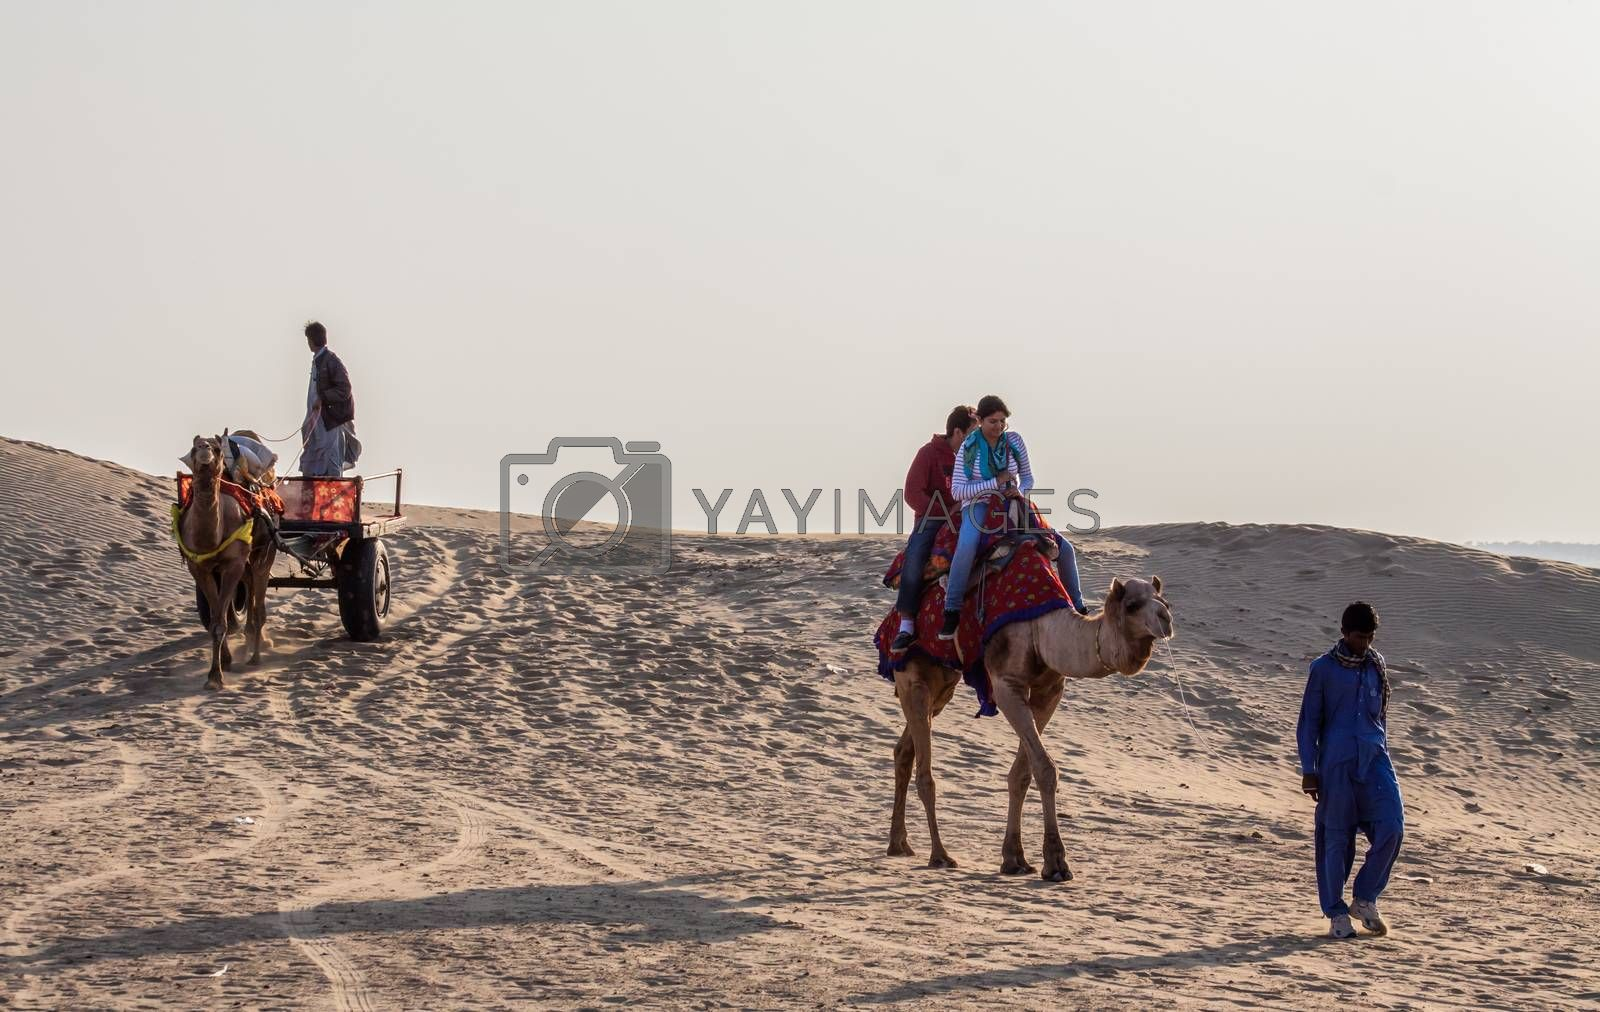 Royalty free image of Sam Sanddunes, Jaisalmer, Rajasthan, India.16February2014.Camel Rides and camel cart with unknown tourists by giddavr